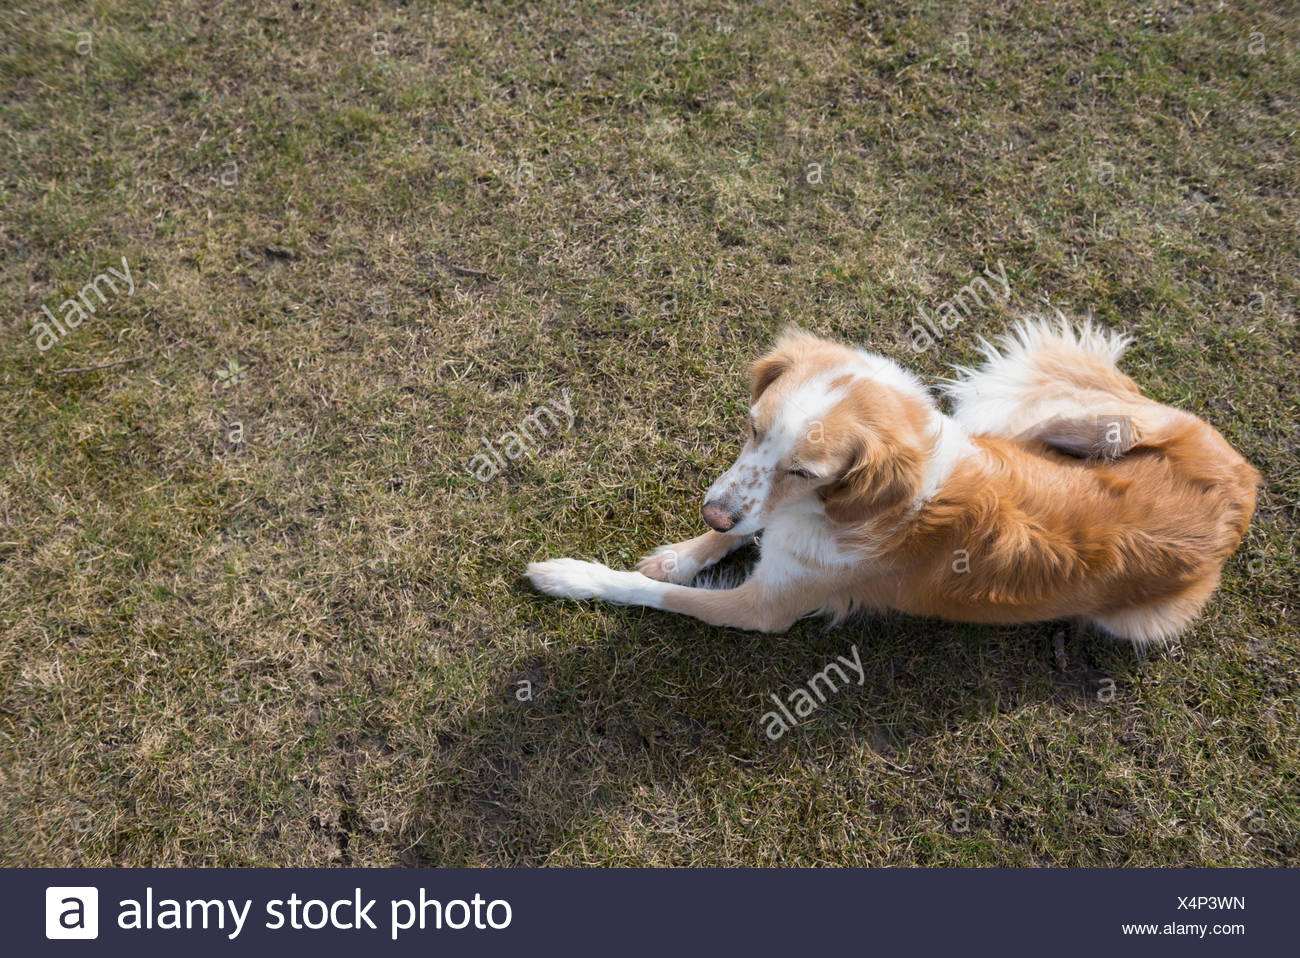 High angle view of dog sitting in field, Munich, Bavaria, Germany - Stock Image